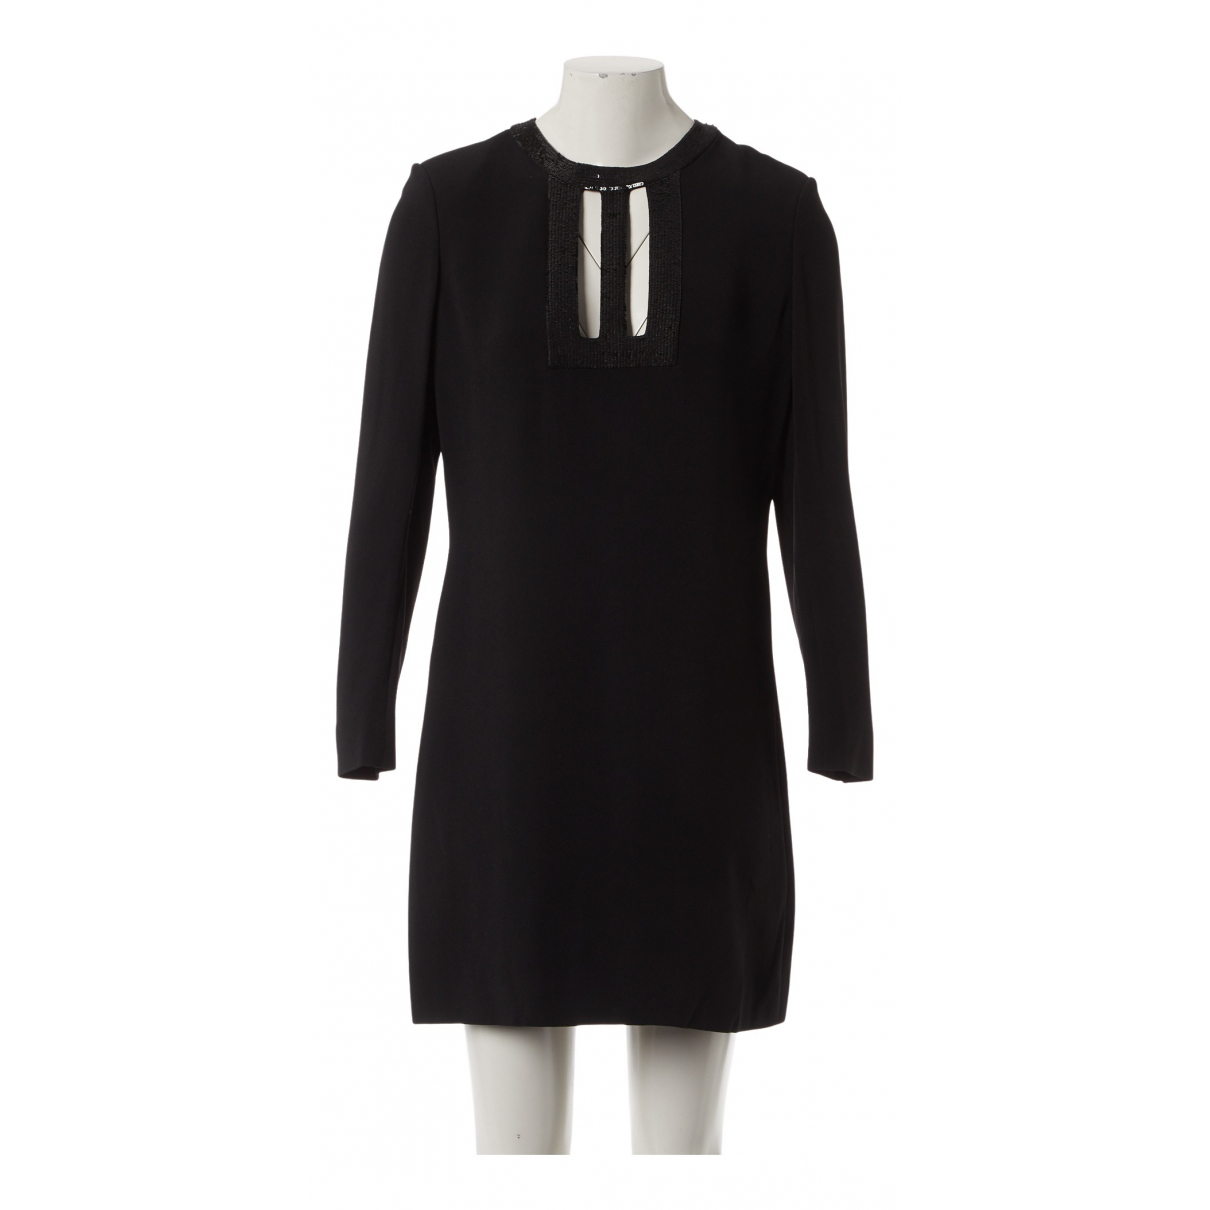 Saint Laurent \N Kleid in  Schwarz Viskose